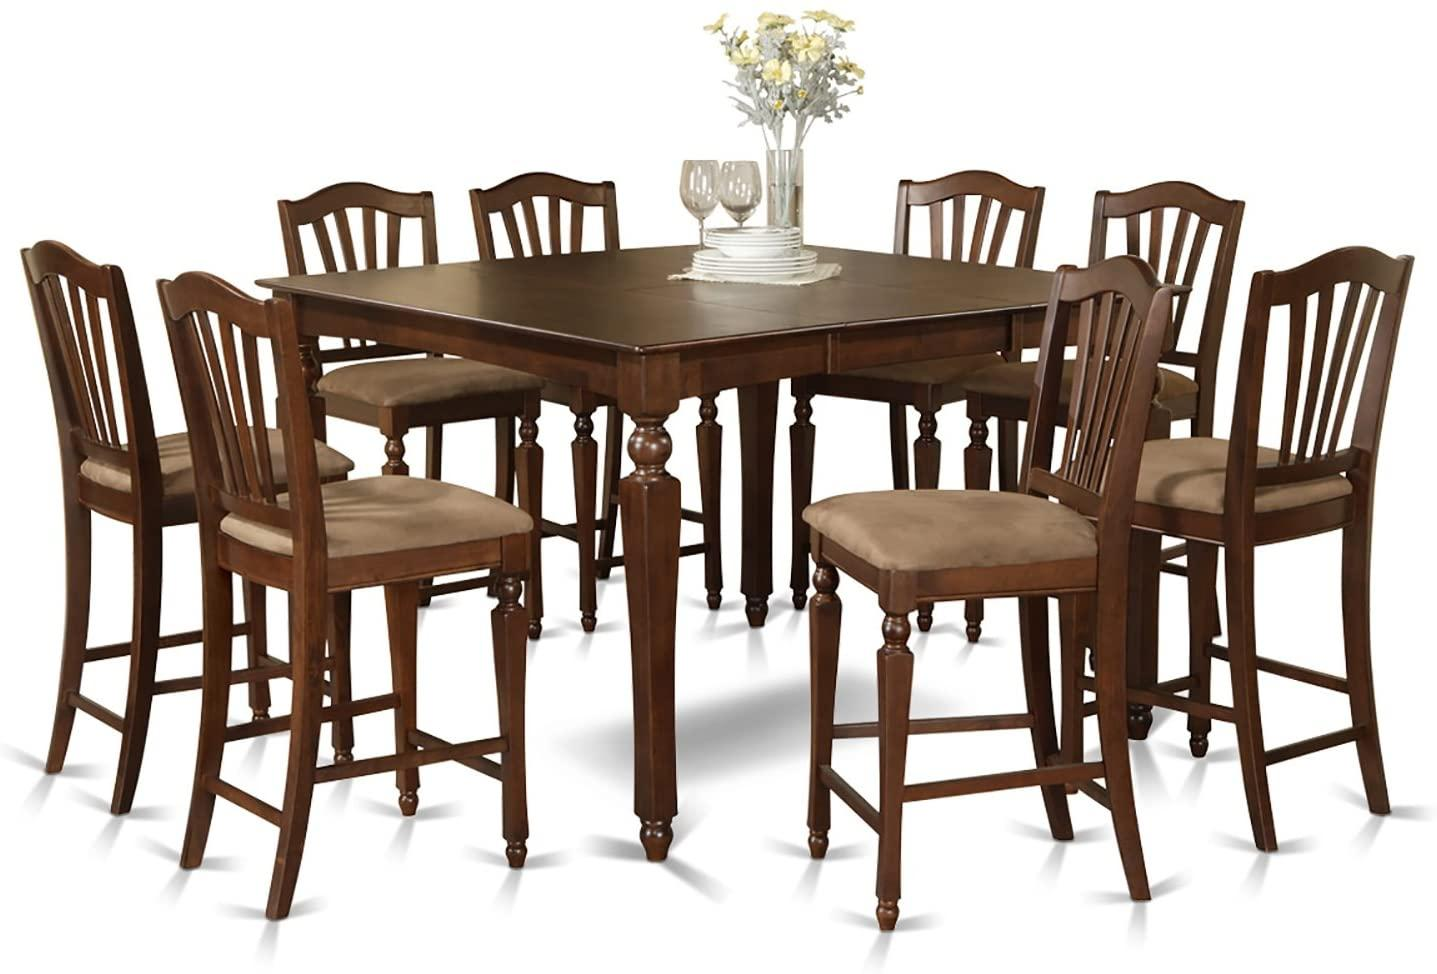 Top 13 Best Dining Set for Home 8